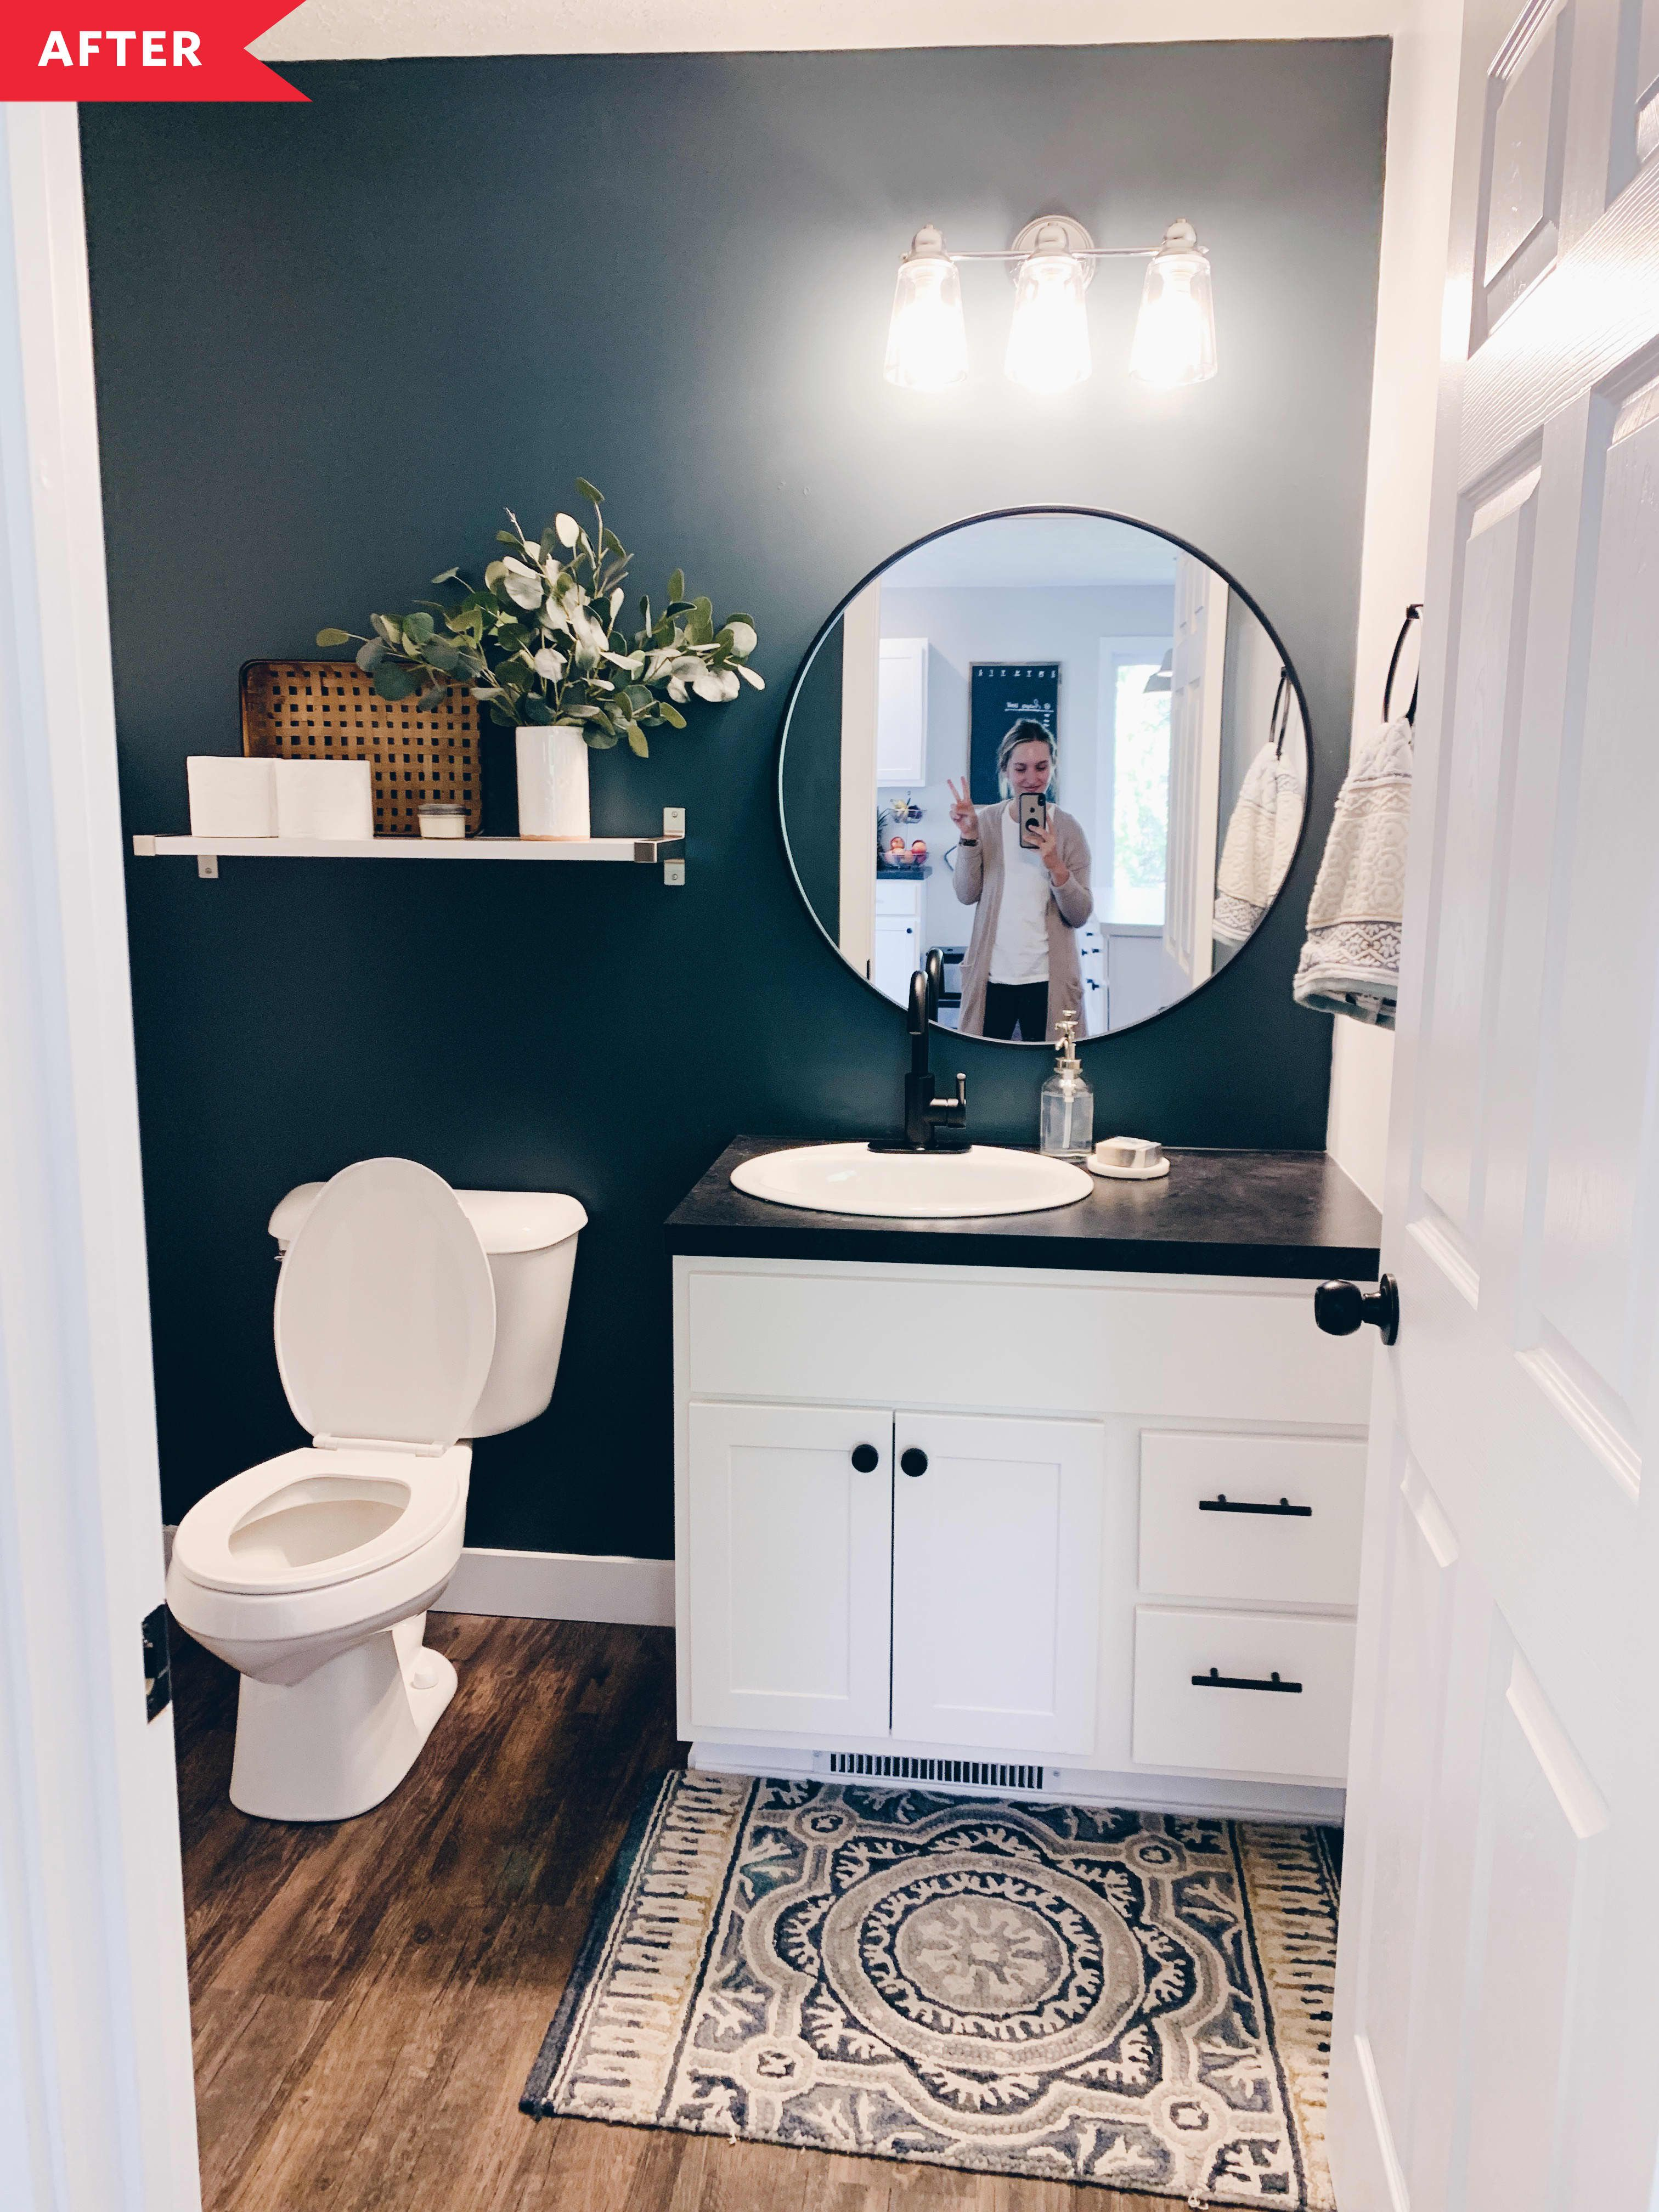 The Best Bold Wall Color Transformations We Saw This Year In 2020 Diy Bathroom Remodel Bath Makeover Small Bathroom Decor